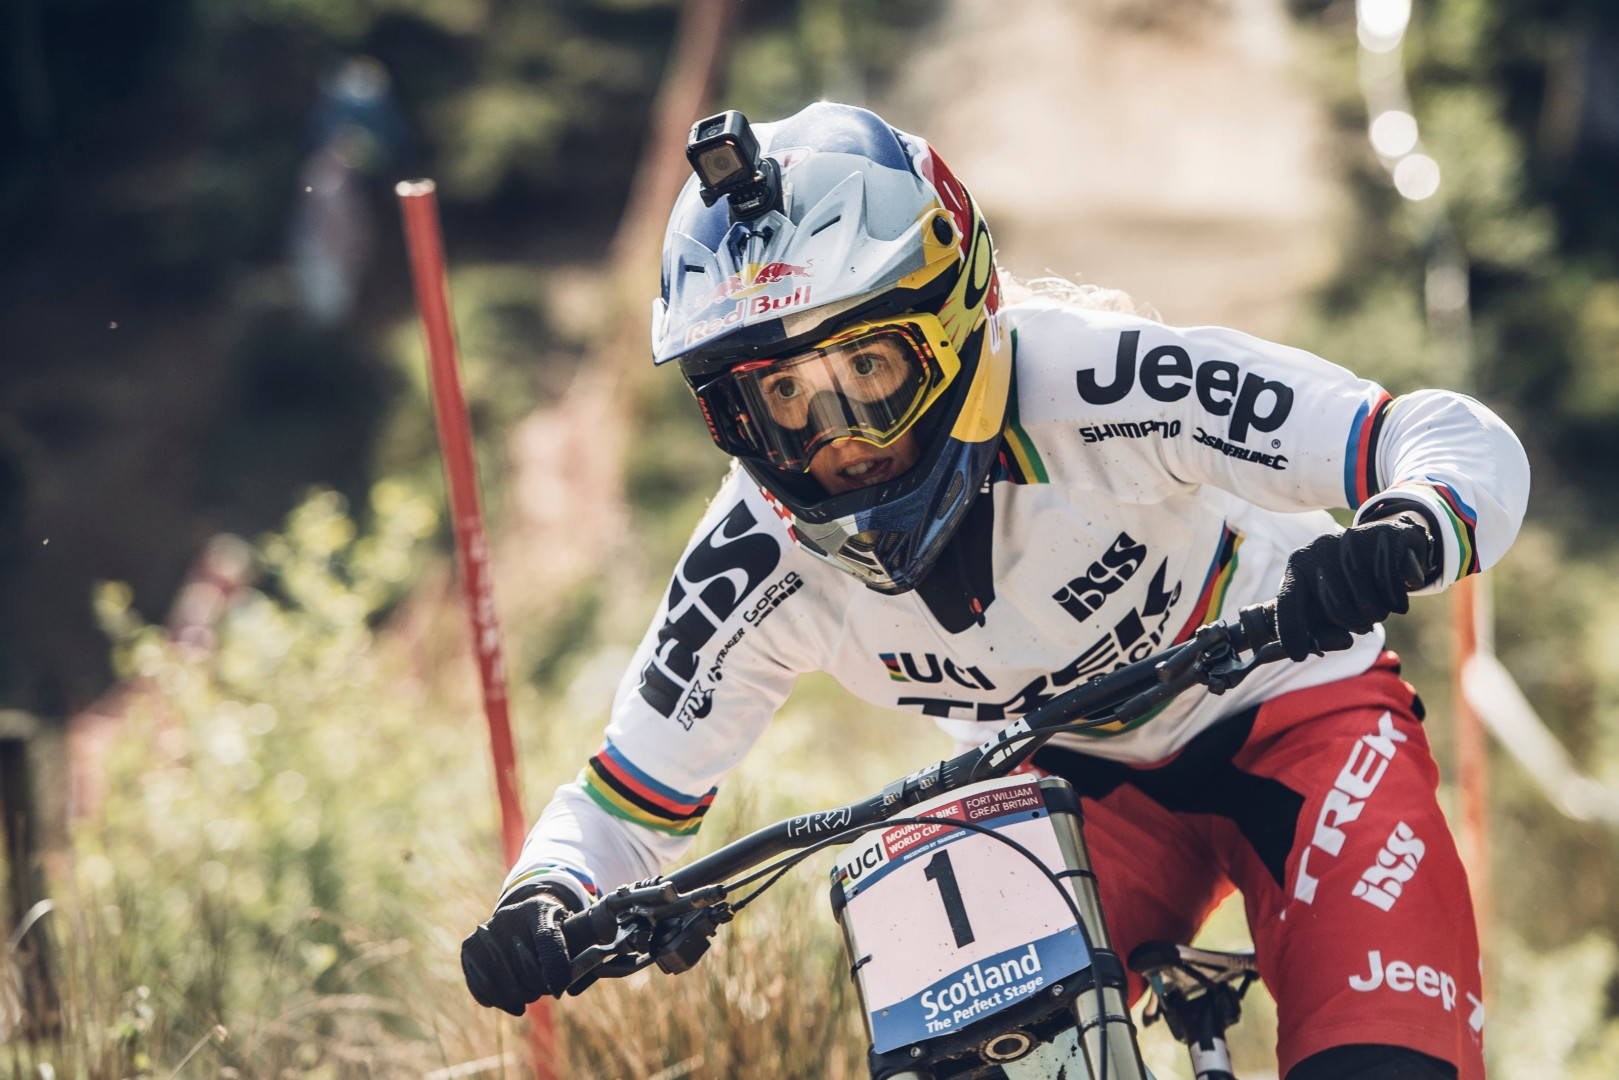 Rachel Atherton UCI Fort William 2016 fot Bartek WolinskiRed Bull Content Pool